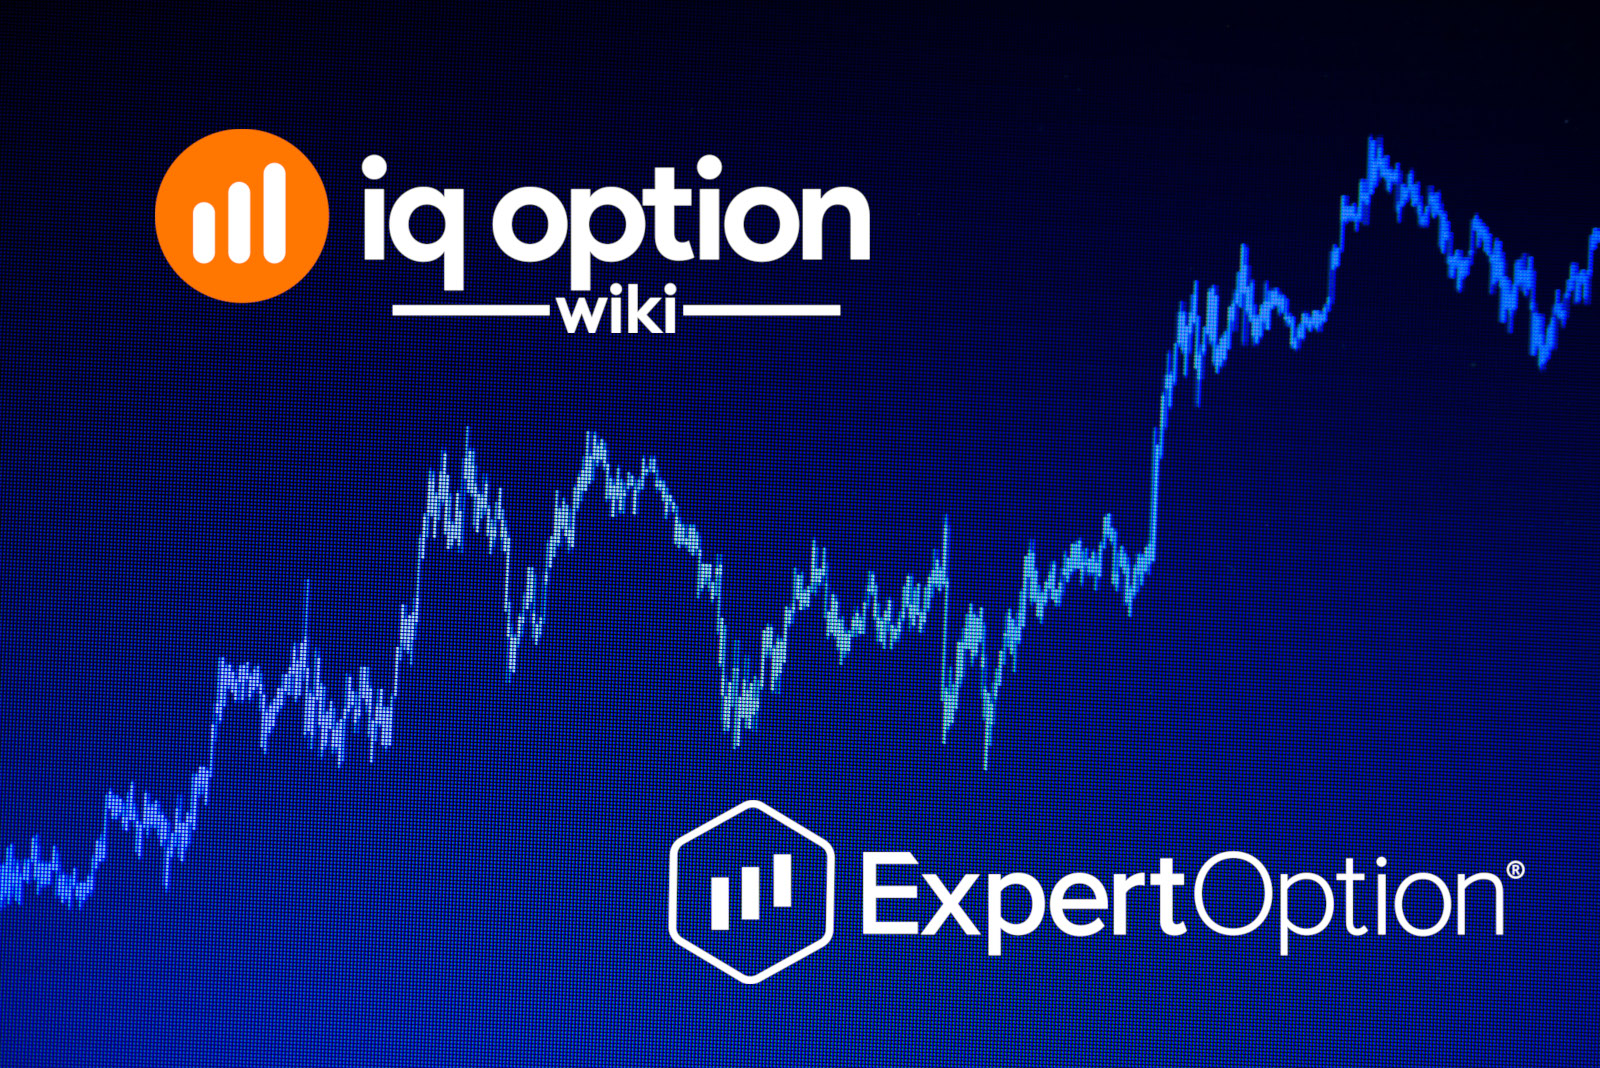 iq option vs expert option